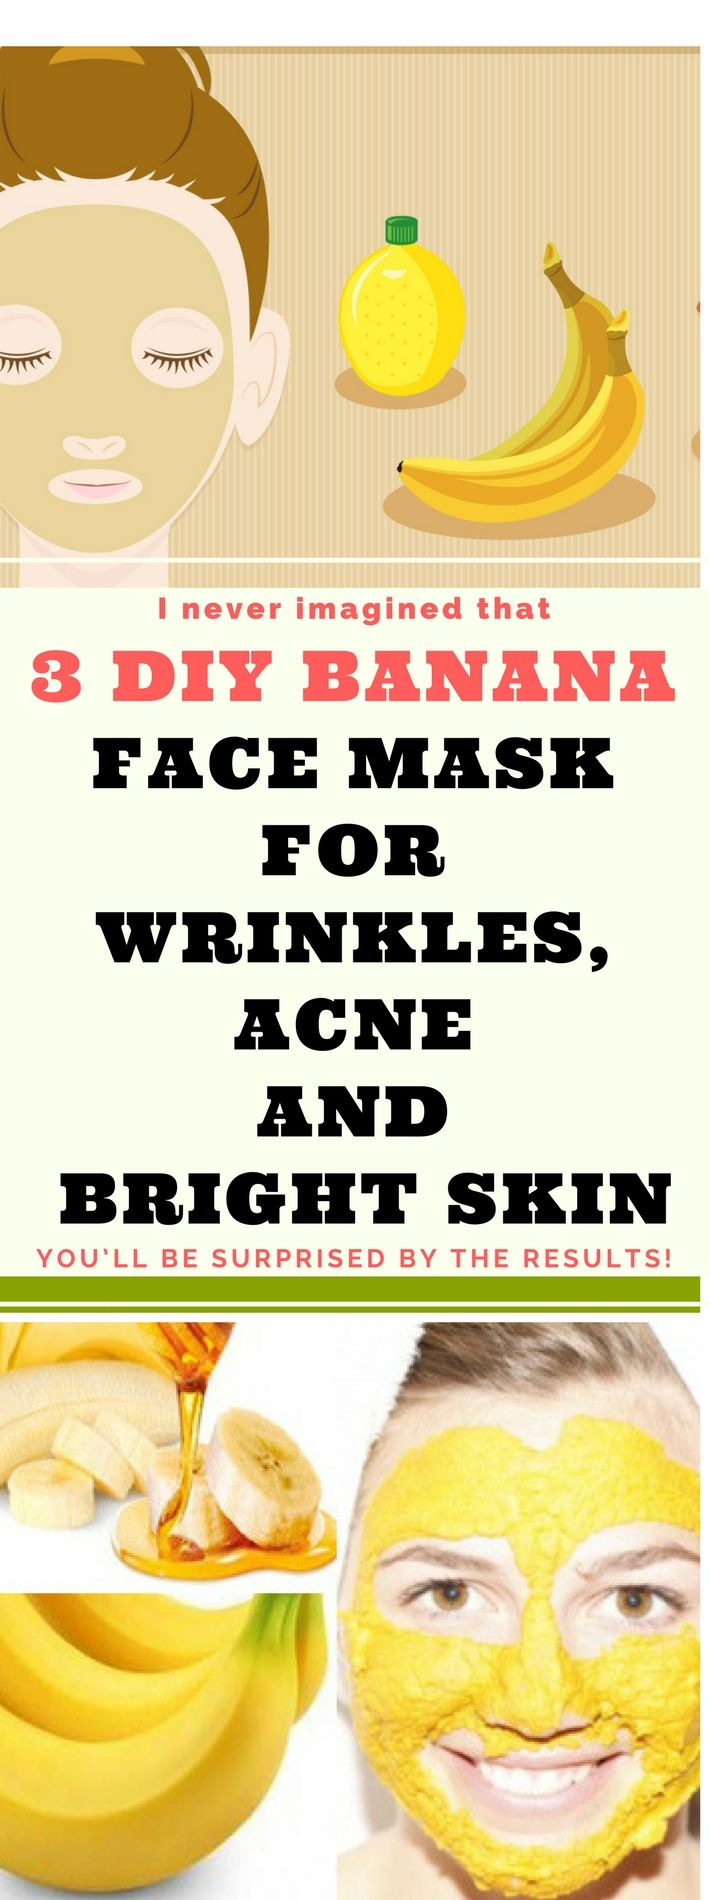 3 DIY Banana Face Mask For Acne, Wrinkles & Bright Skin...Miracle!!!!